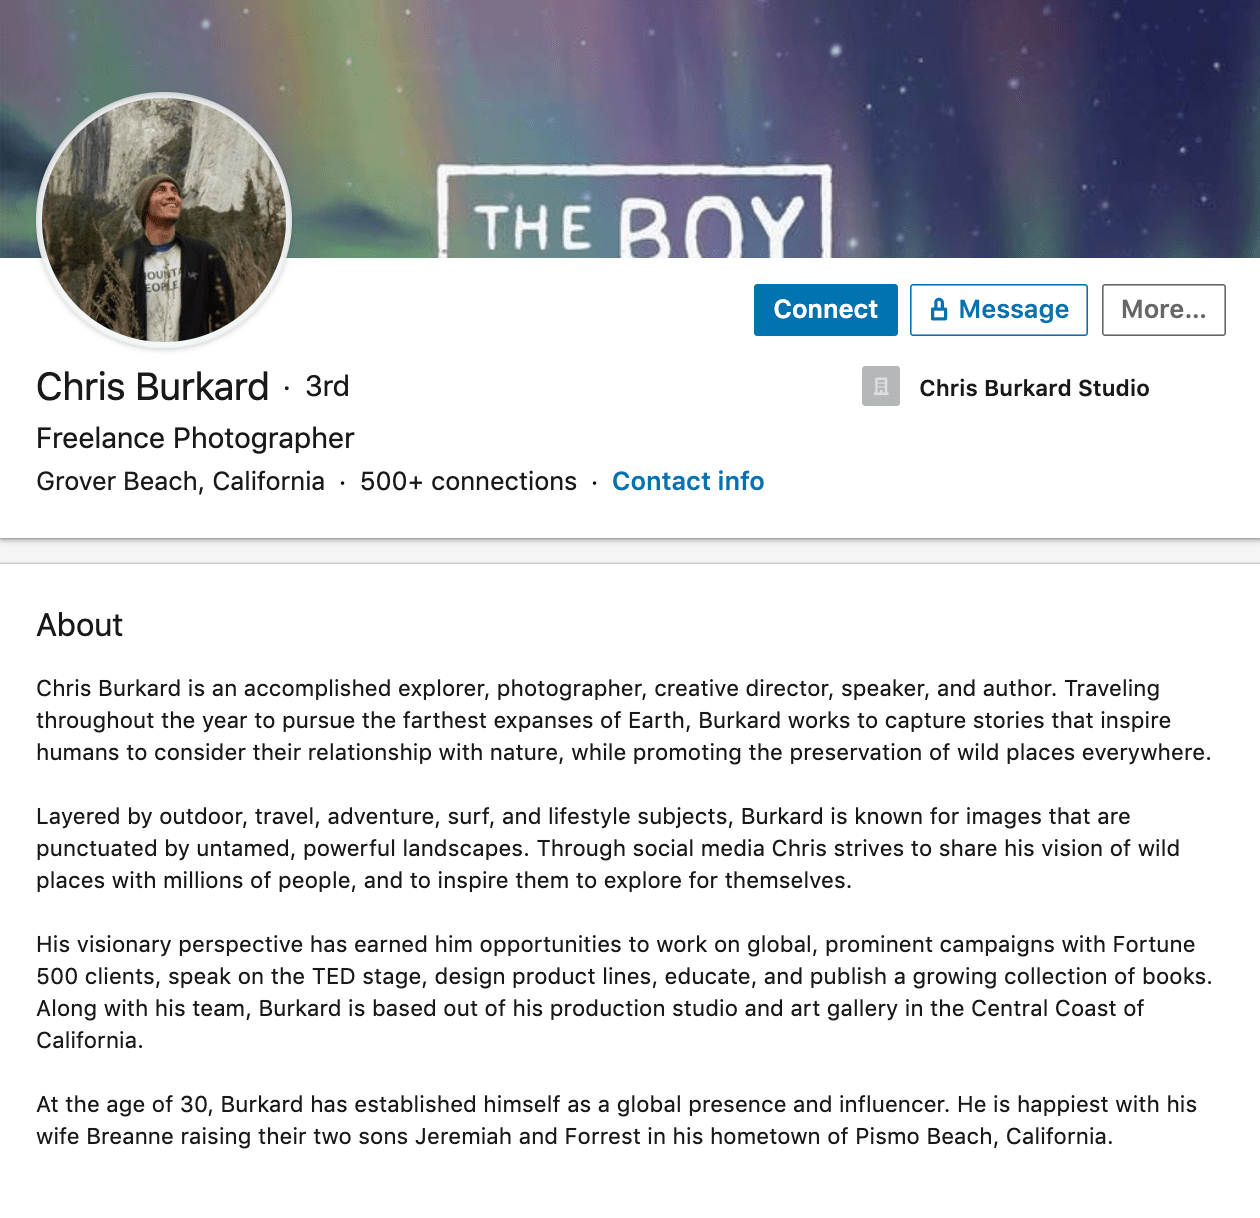 Chris Burkard's professional bio on LinkedIn